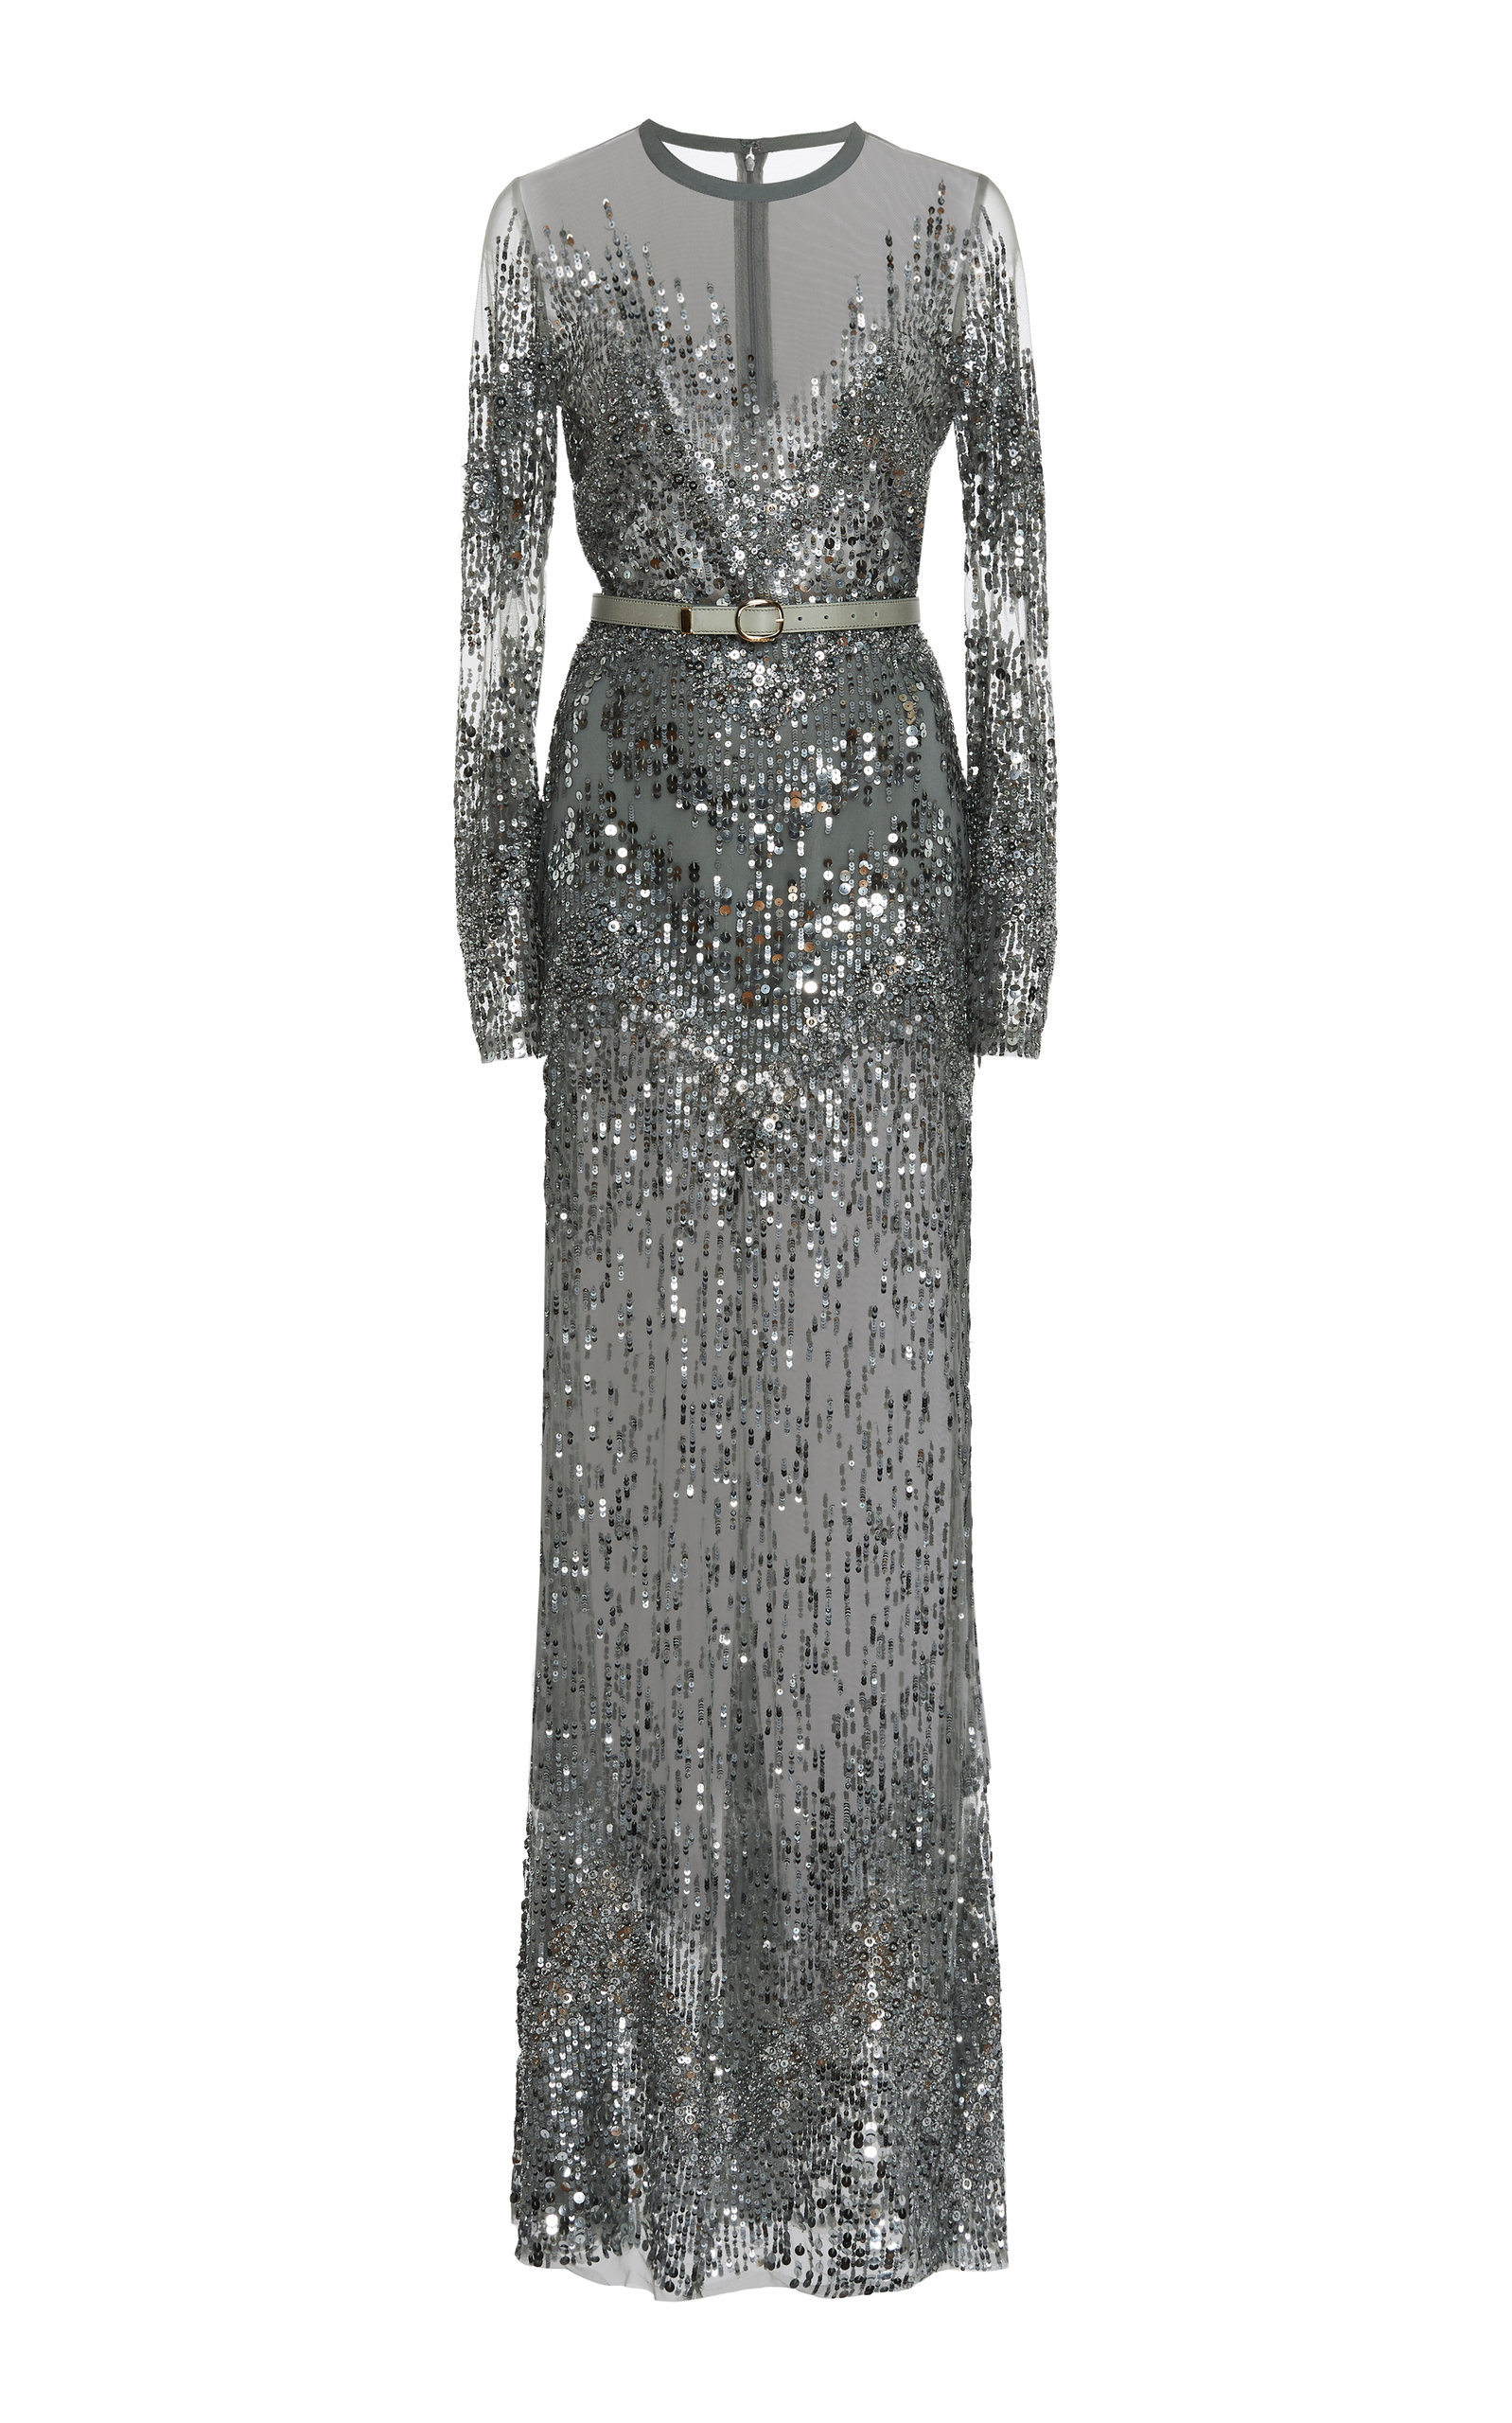 0d507167b63 Elie SaabSequin Embroidered Tulle Long Sleeve Gown. CLOSE. Loading